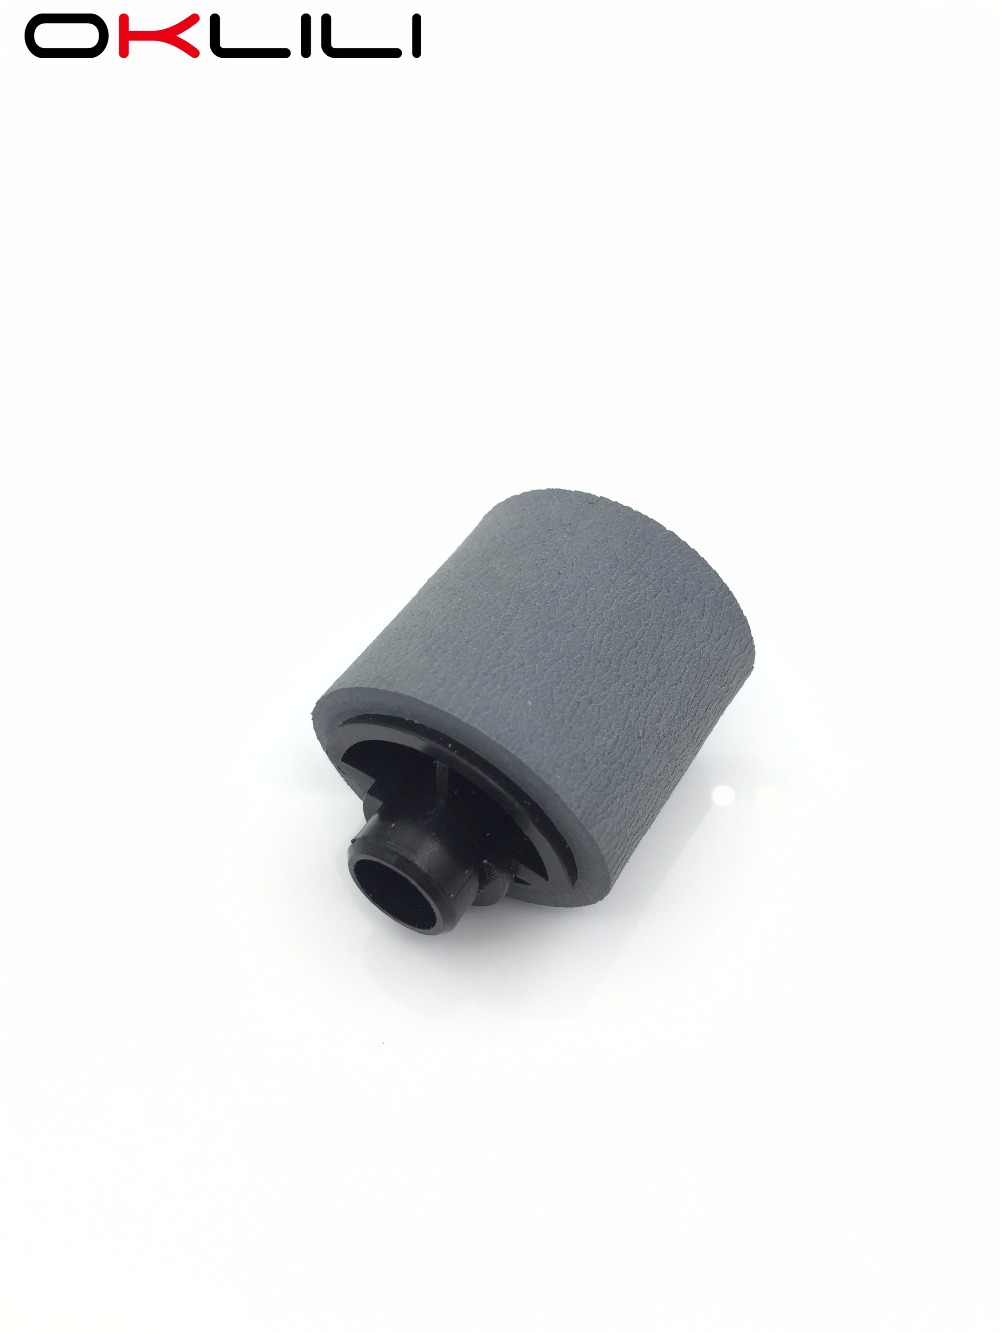 10X JC72-01231A Pickup Roller for Samsung ML1510 1710 1740 1750 2250 SCX4016 4116 4100 4200 4220 4300 4500 4520 4720 SF560 SF565 2 x jc72 01231a original new pick up roller for samsung ml1510 ml1710 ml1740 scx 4100 4200 4300 565p 560 4016 4216 560r